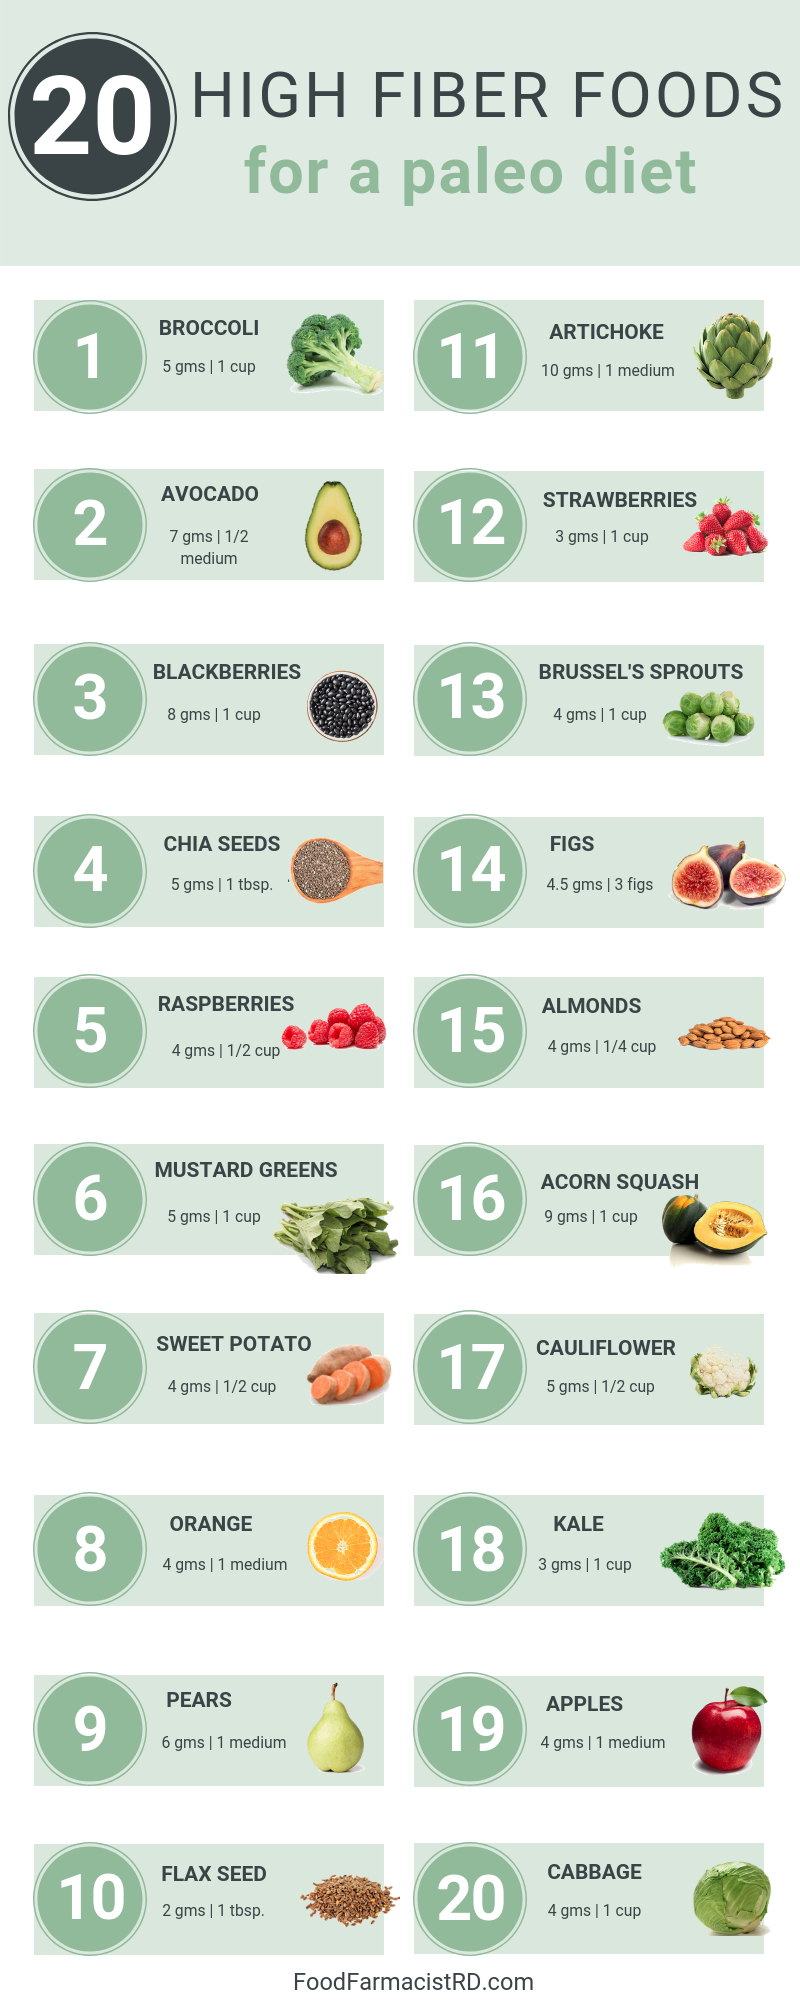 Paleo Foods - High Fiber